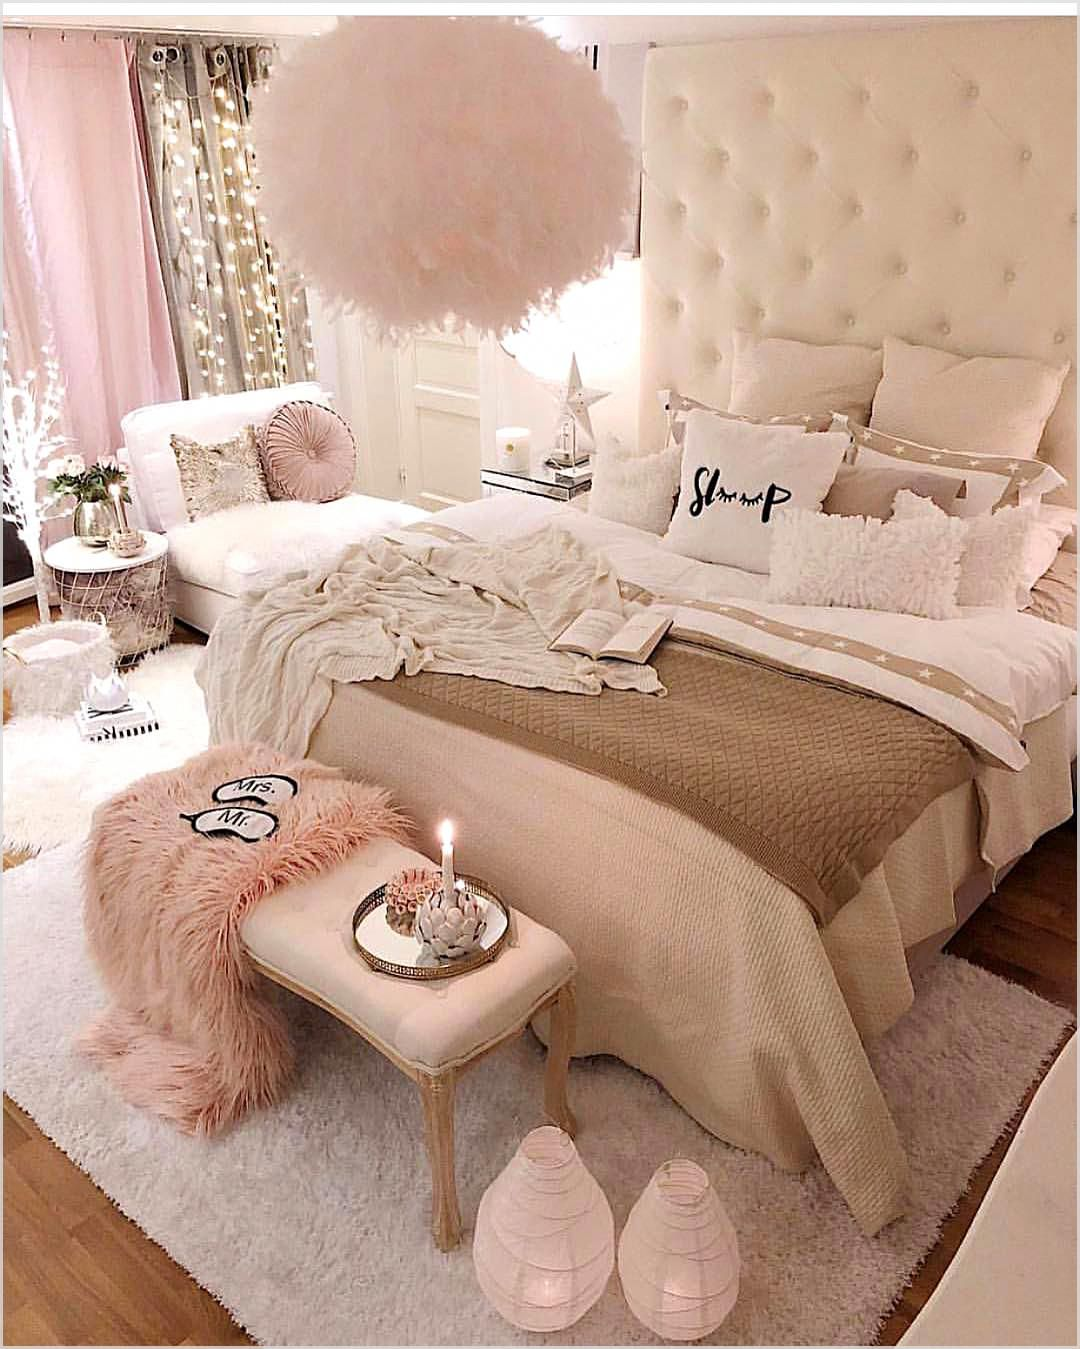 Summer Time Provides A Special Opportunity To Set Around At The Beach Or Tan At The Pool Or Even Go Swi Fancy Bedroom Room Inspiration Bedroom Bedroom Interior